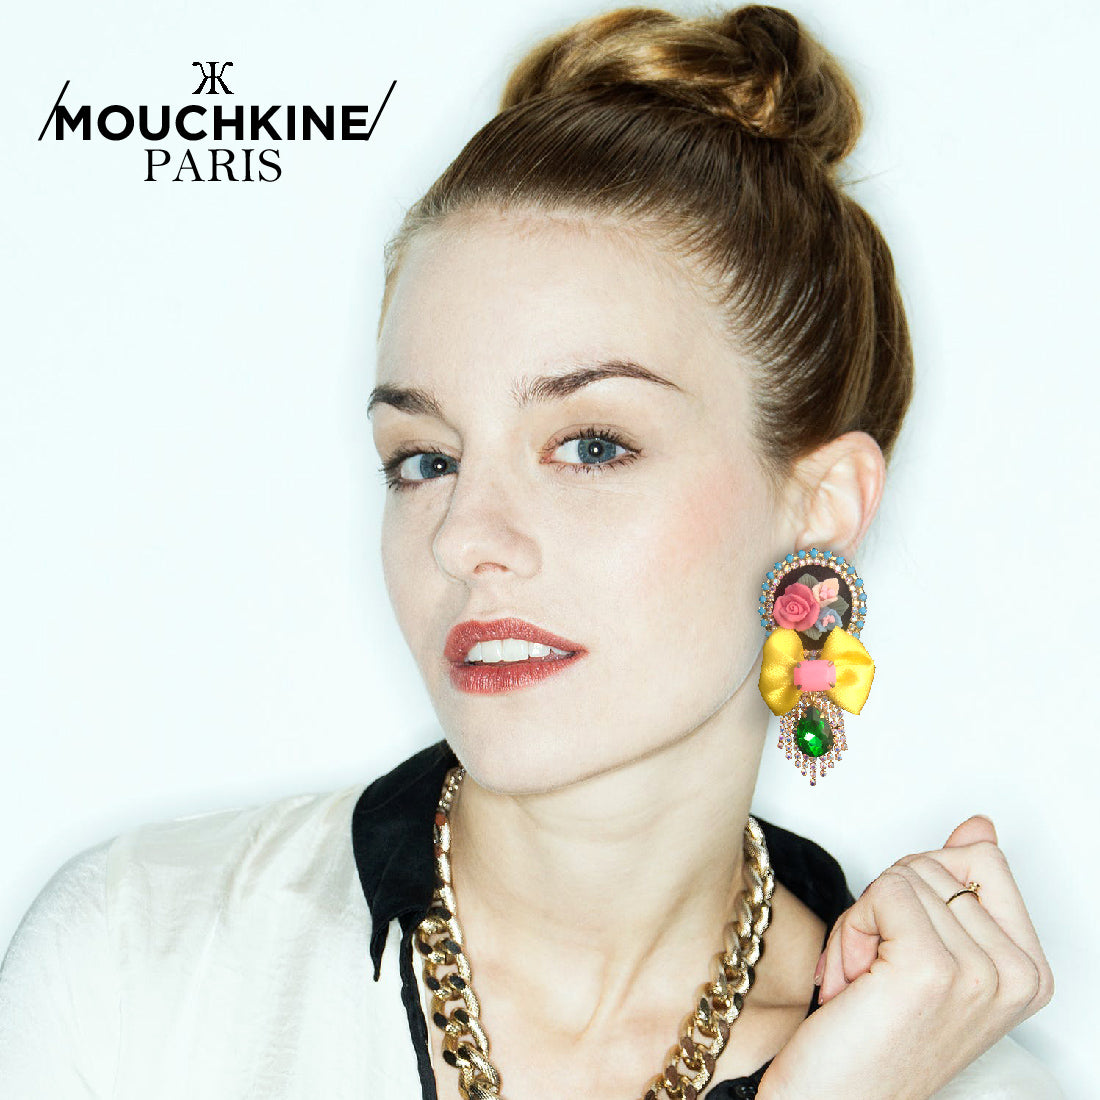 mouchkine-jewelry-style-statement-earrings-french-chic